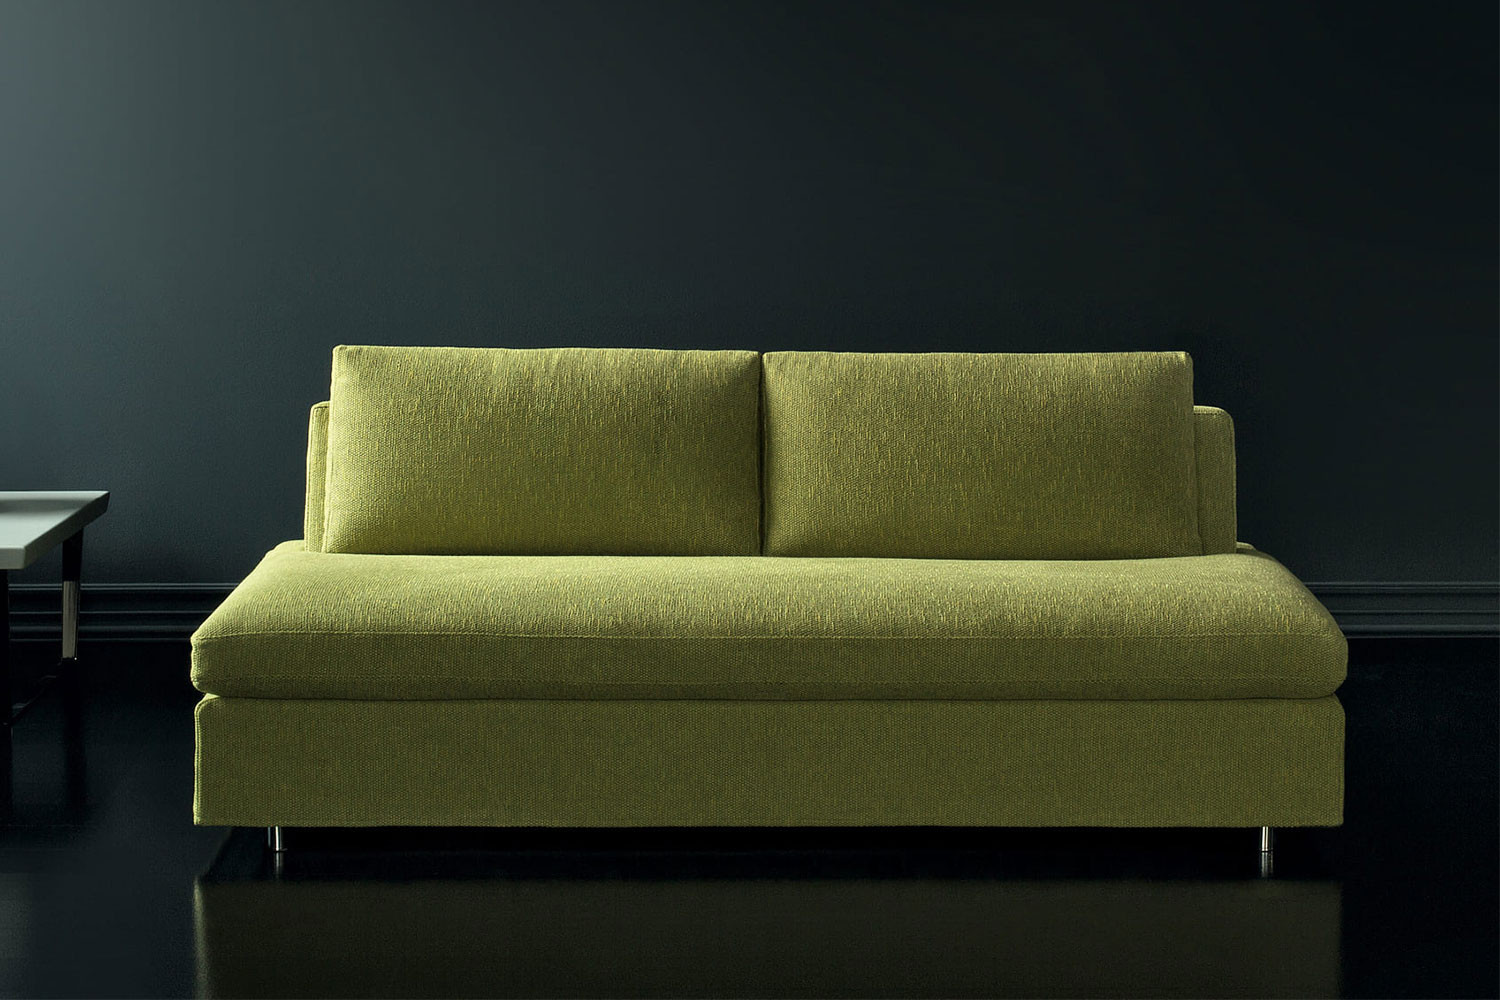 Bench style 2-3 seater armless sofa bed or chair bed with Lampolet mechanism and Simmons mattress